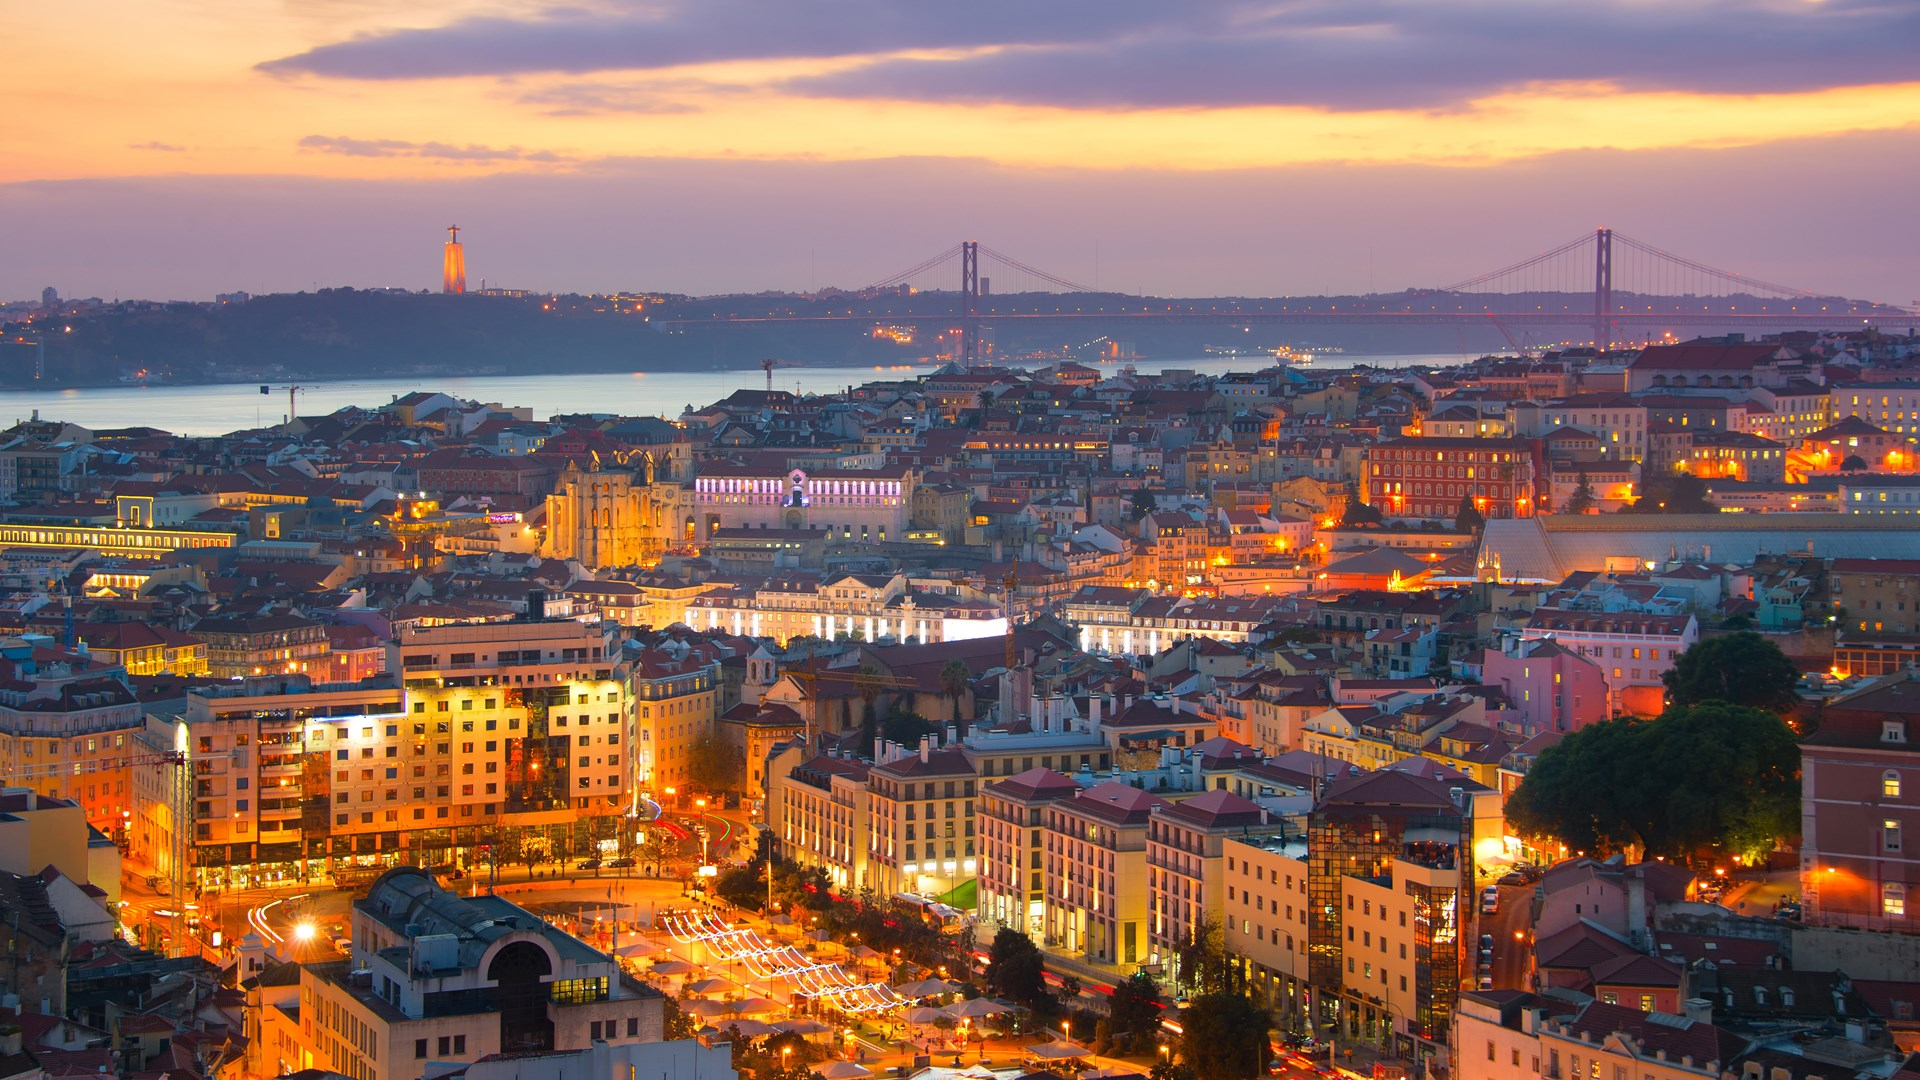 Lisbon skyline at twilight. Portugal